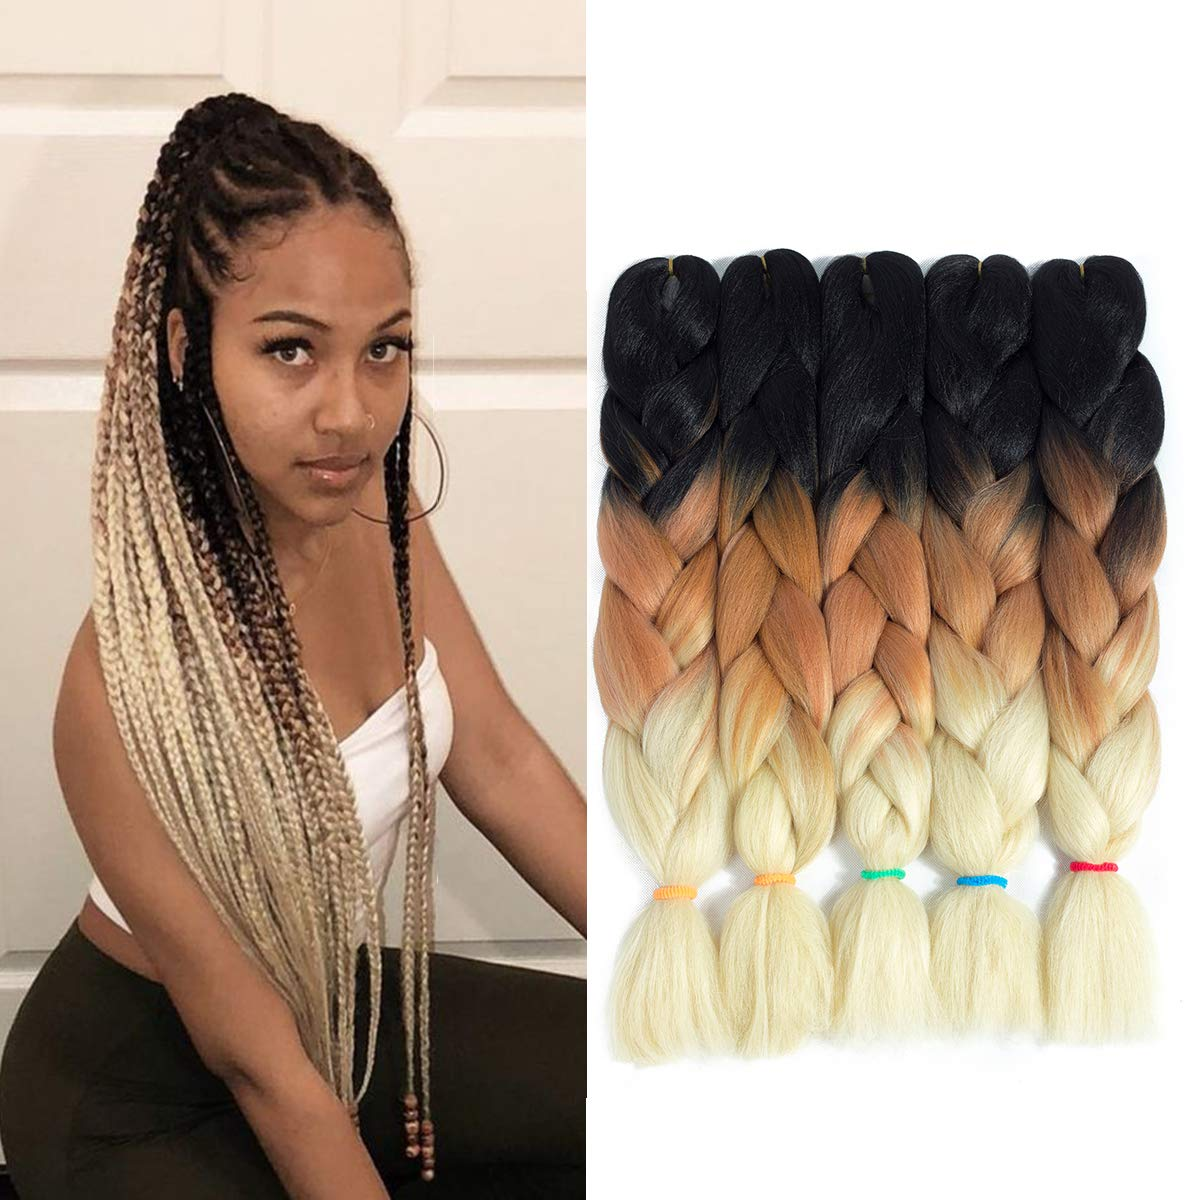 3 Tone Ombre Kanekalon Jumbo Braiding Hair 24 Inch 5Pcs/Lot Synthetic  African Brown and Blonde Colorful Pre Stretched Braiding Hair for Twist  Crochet